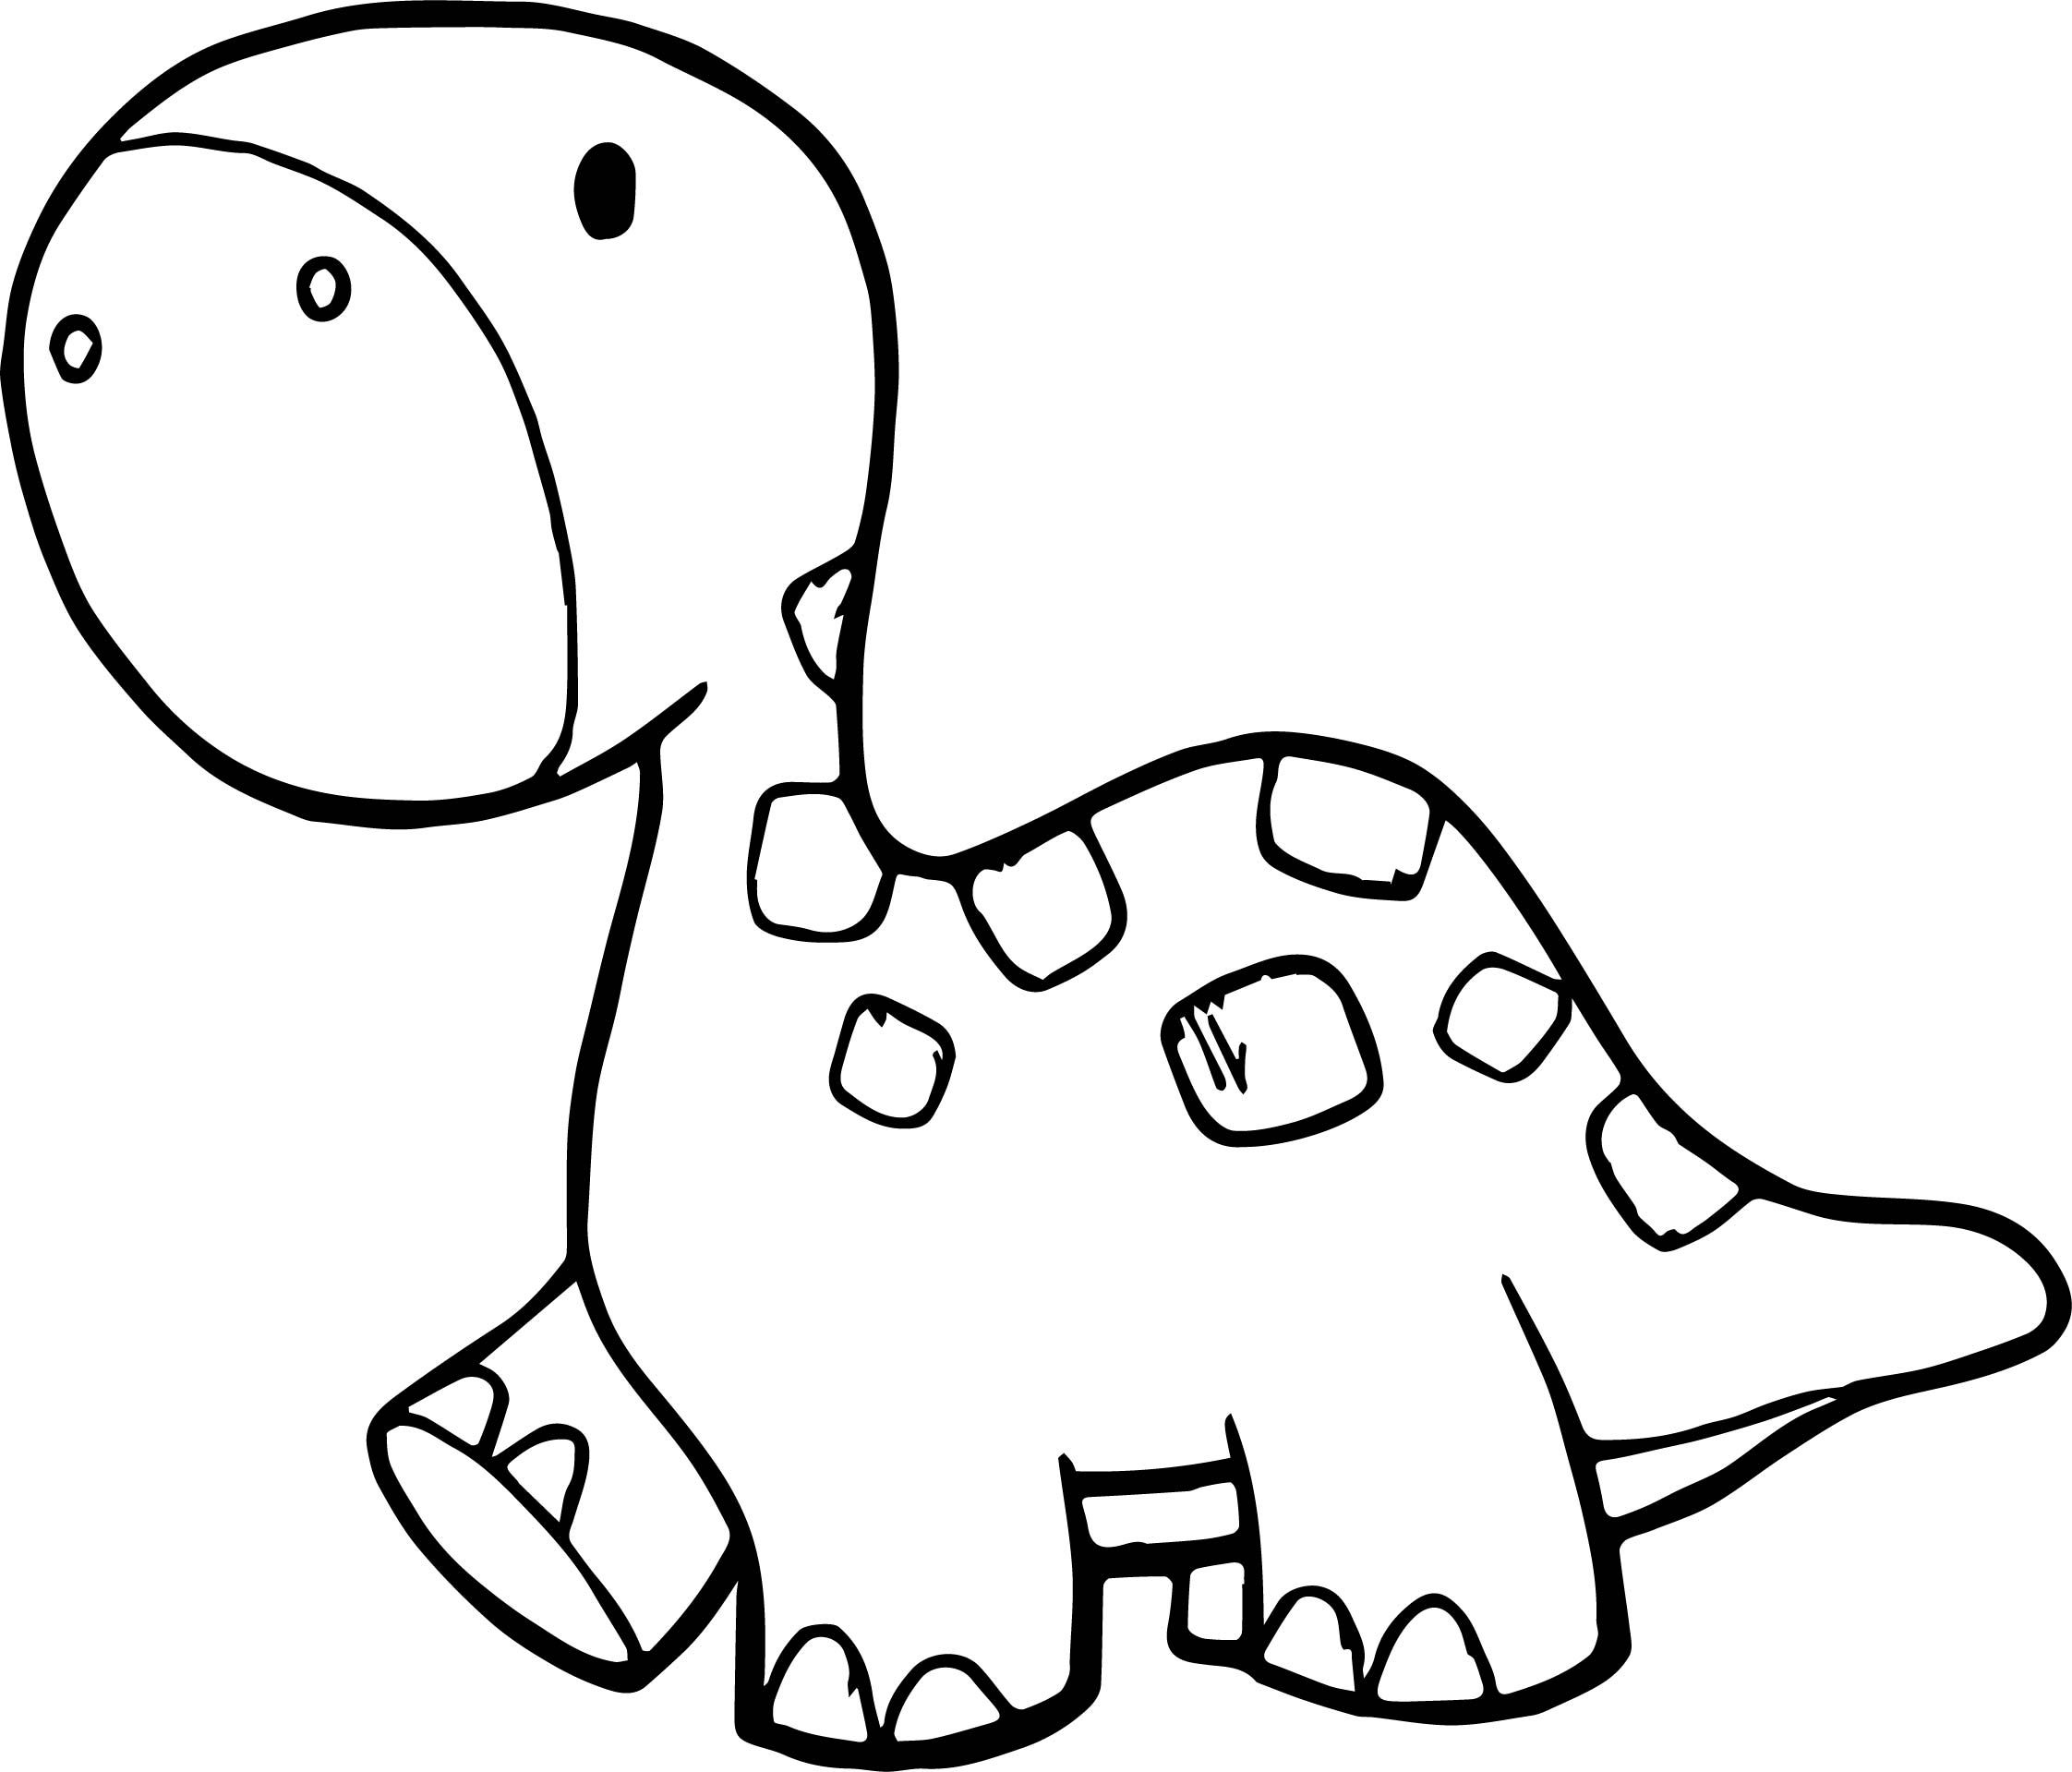 Awesome Walking Smaller Dinosaur Coloring Page Dinosaur Coloring